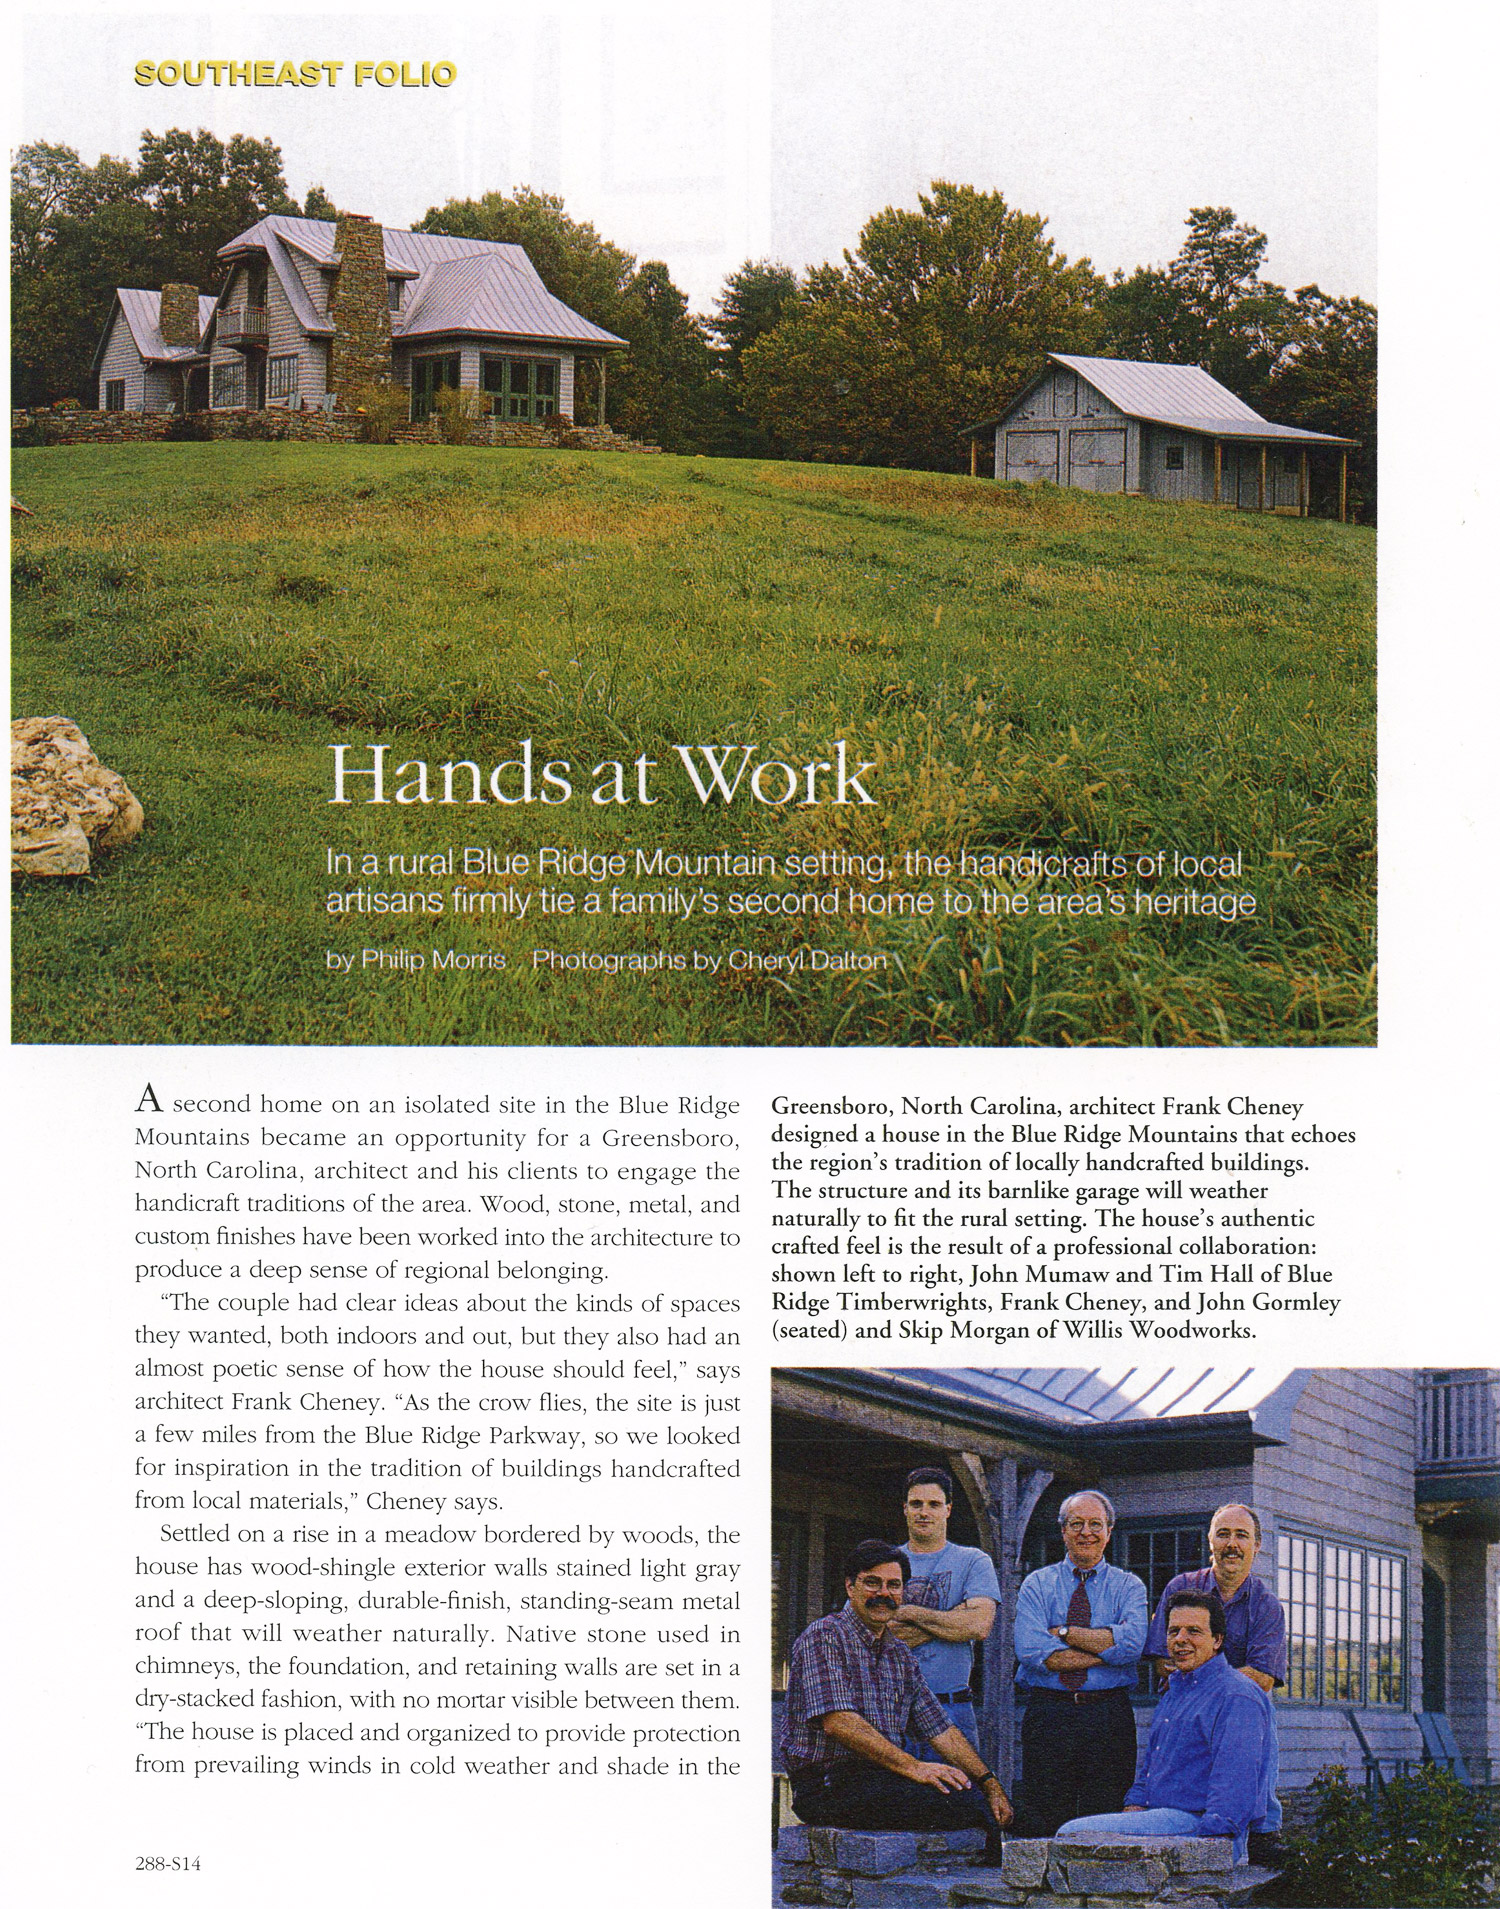 southeast-folio-article-by-philip-morris-featuring-frank-cheney-and-blue-ridge-mountain-heritage-focus.jpg